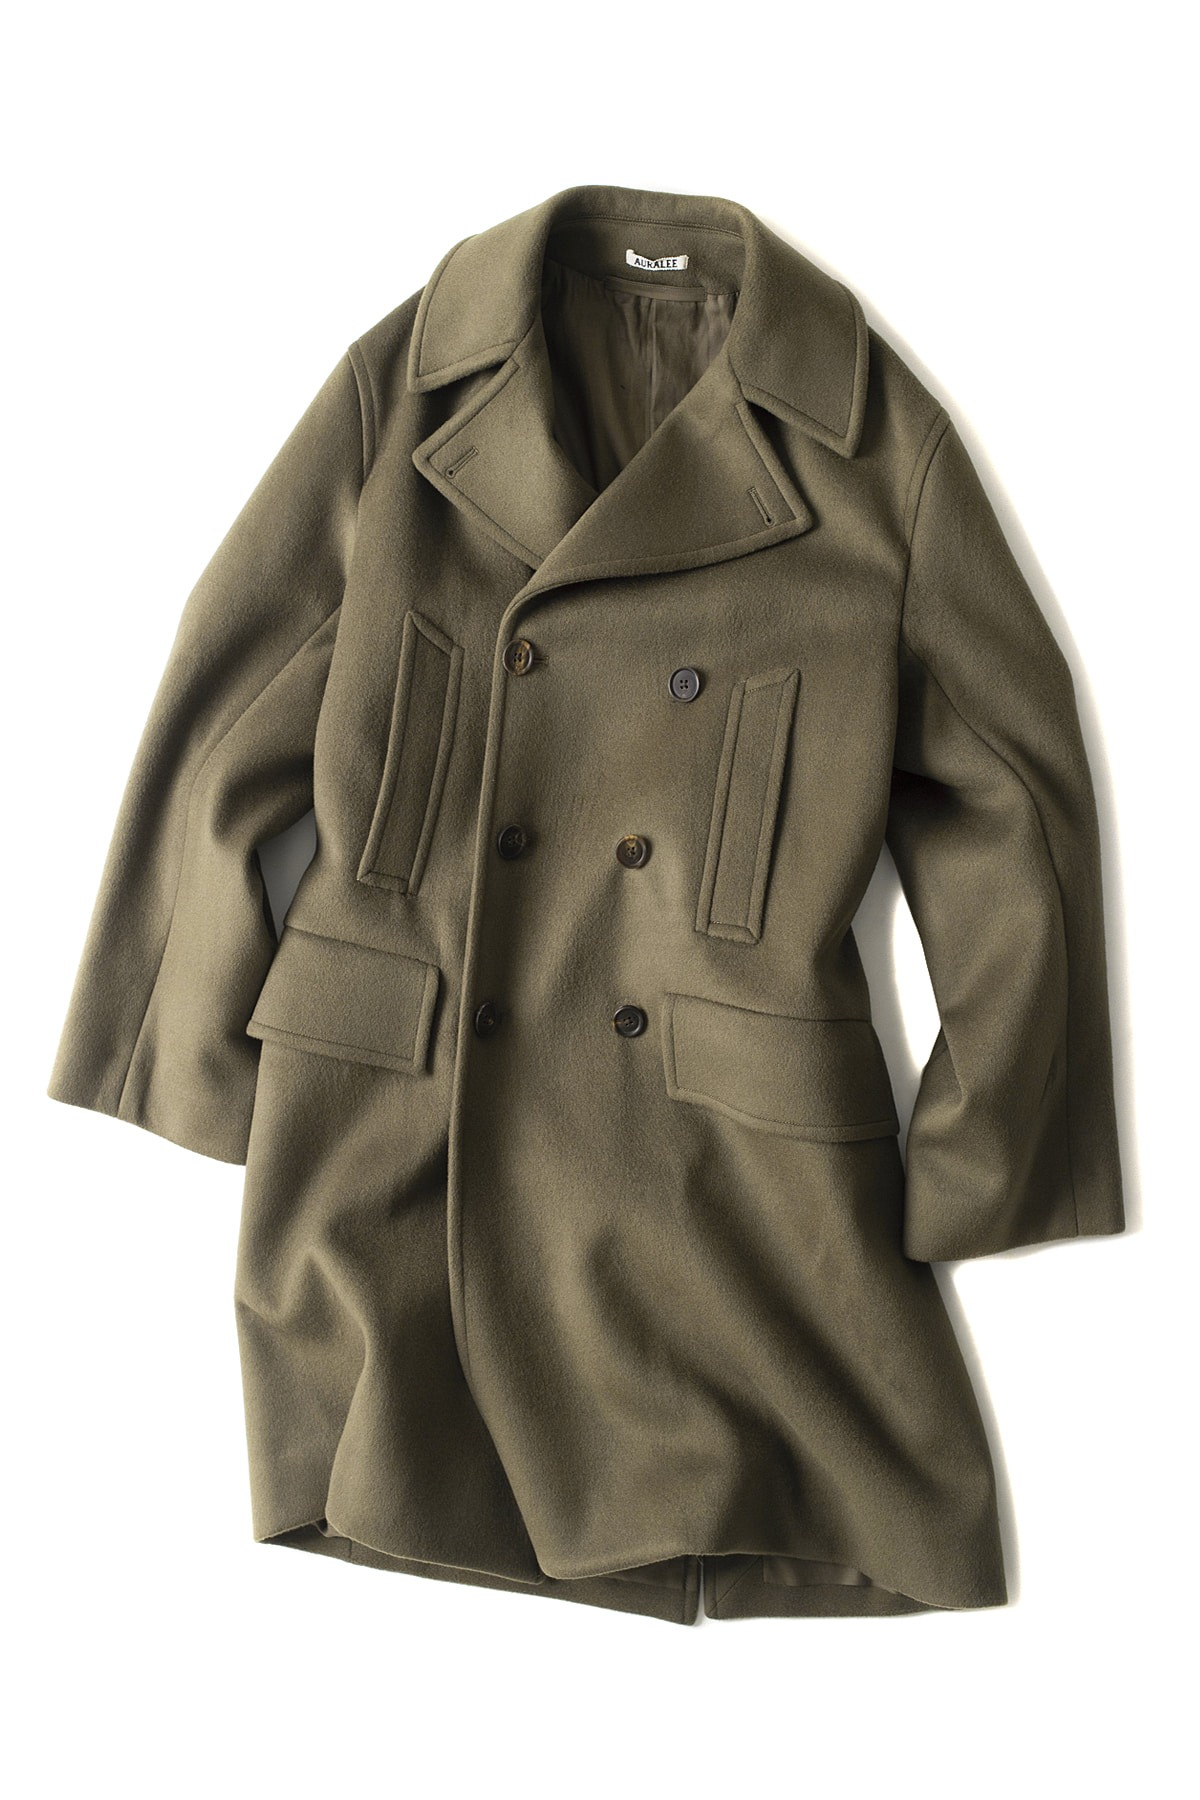 Auralee : Beaver Melton P-Coat (Olive Brown)